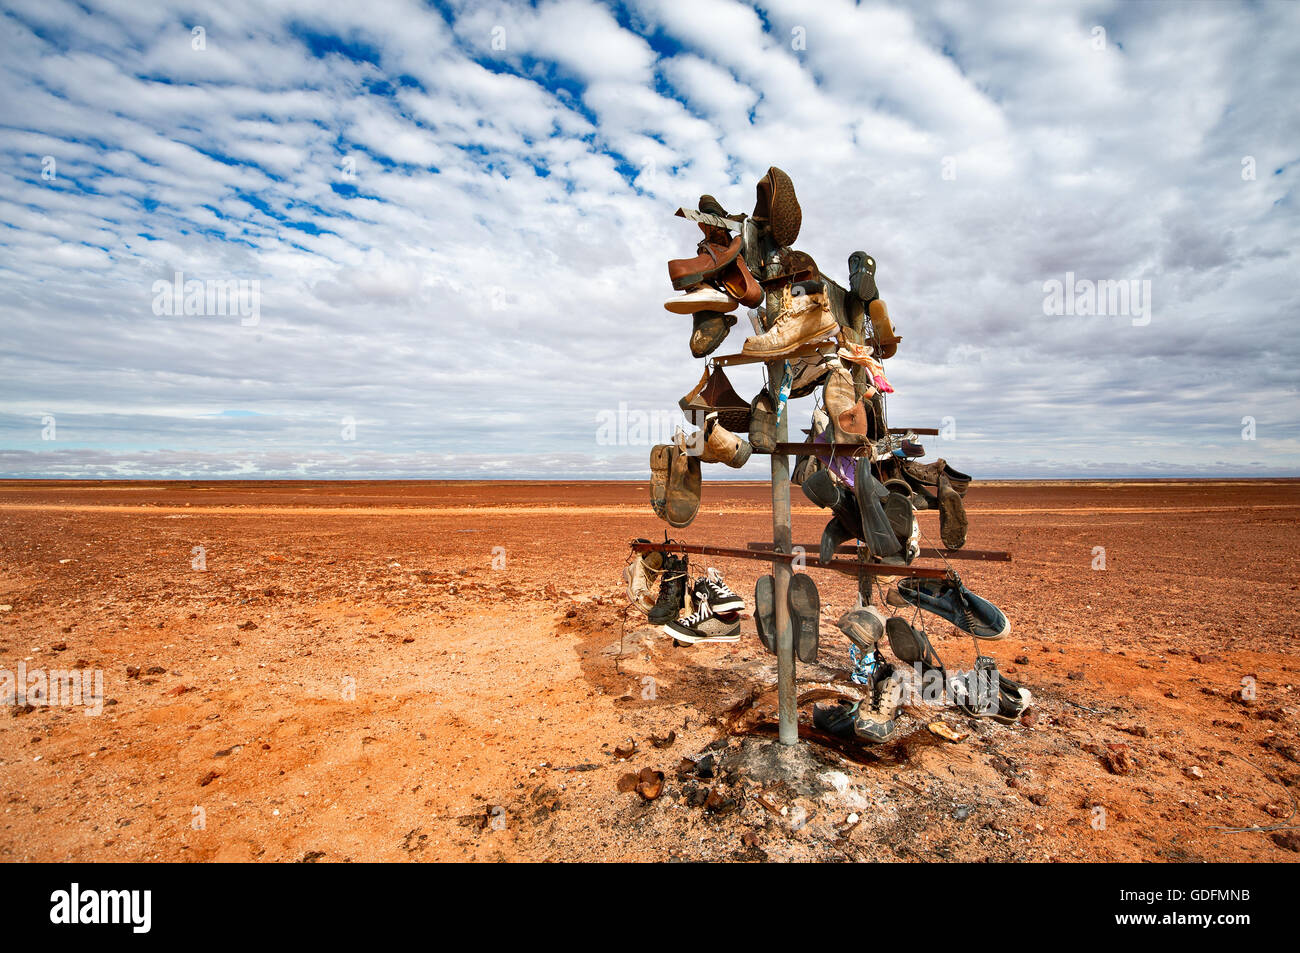 Funny shoe tree in the outback desert area of South Australia. - Stock Image